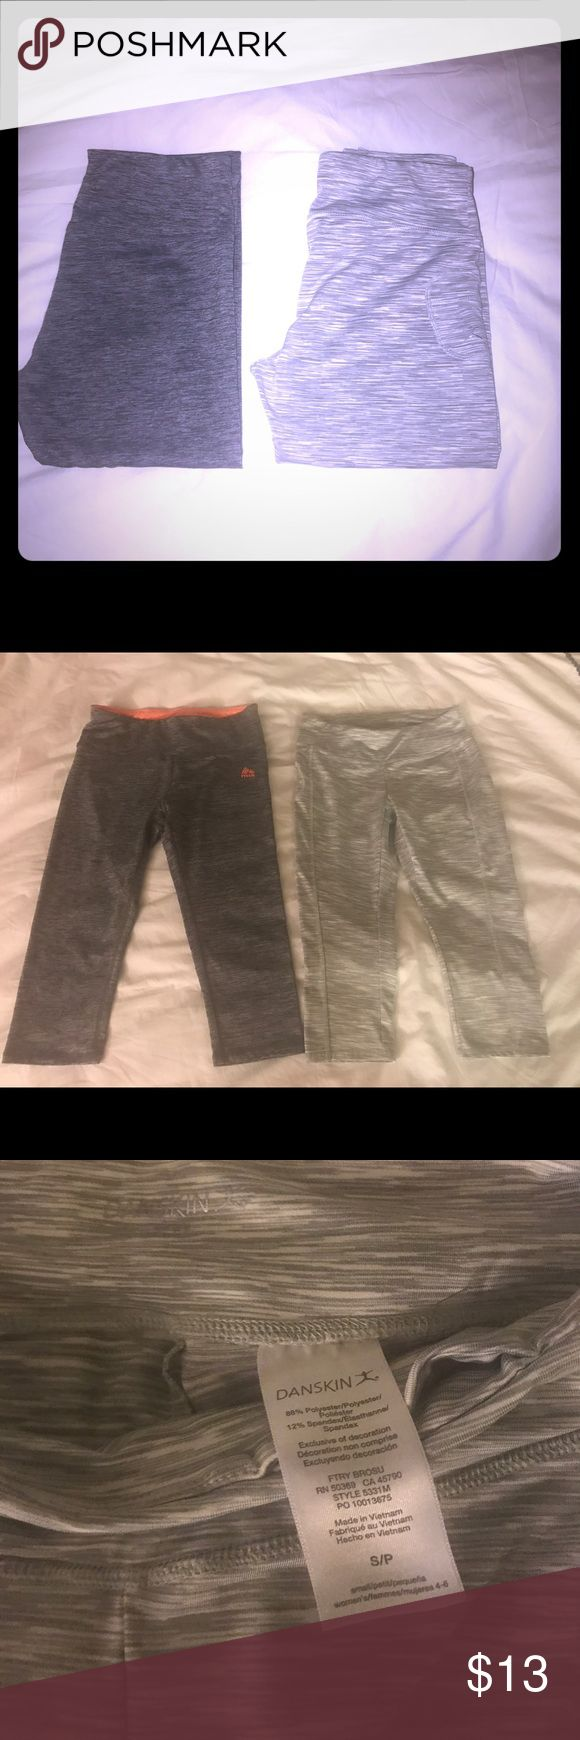 New! Gym Capris/Leggings Never worn Danskin & RBX Capri gym pants, both size small, soft, stretchy material. Ended up being to small for me, both size small Pants Leggings